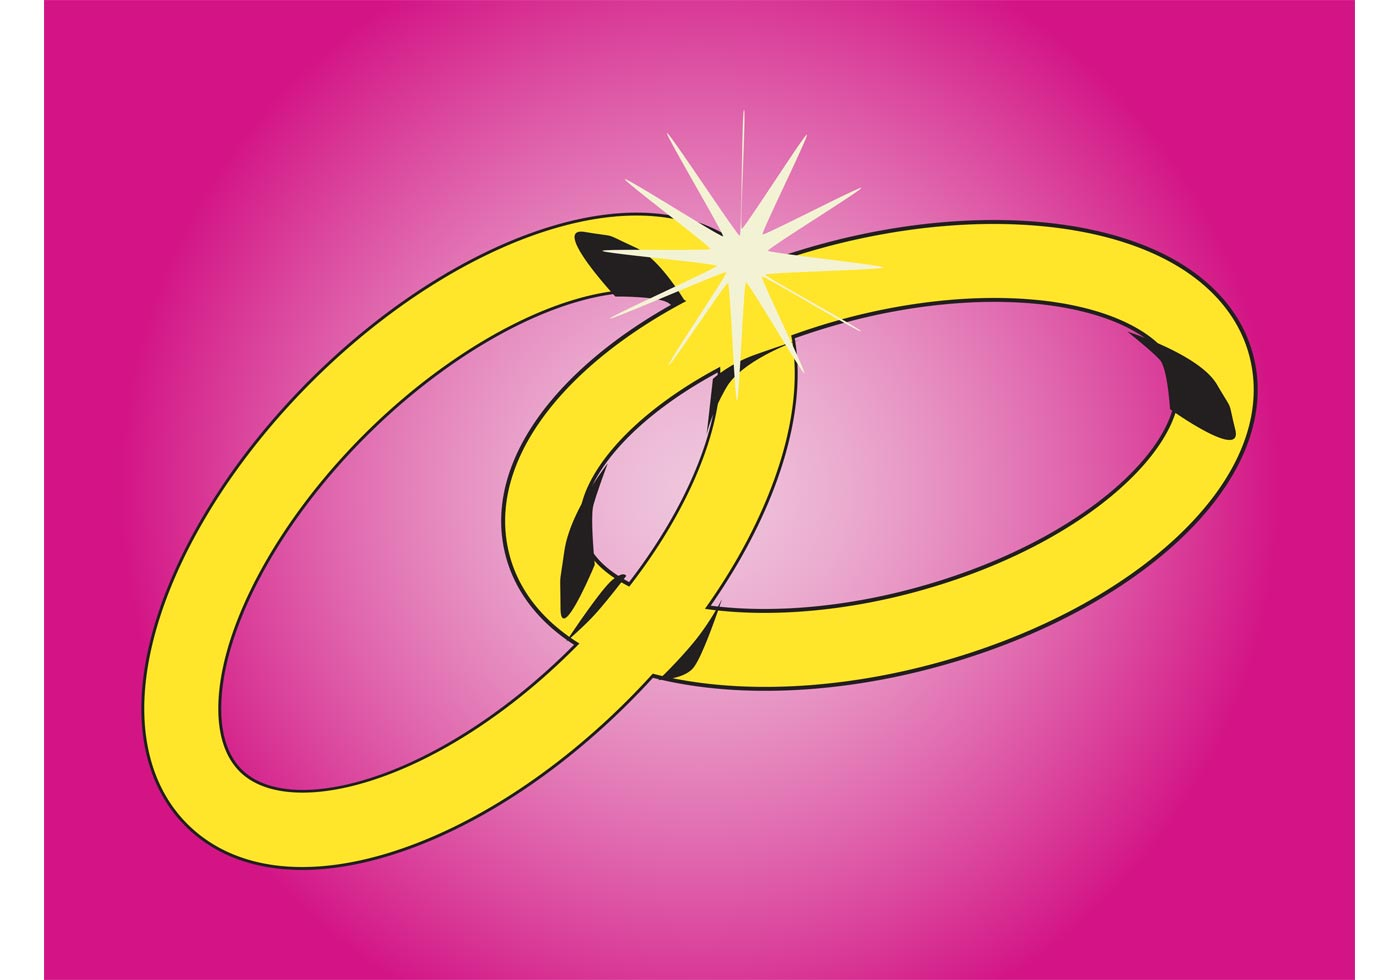 Wedding Rings Graphics - Download Free Vector Art, Stock Graphics ...